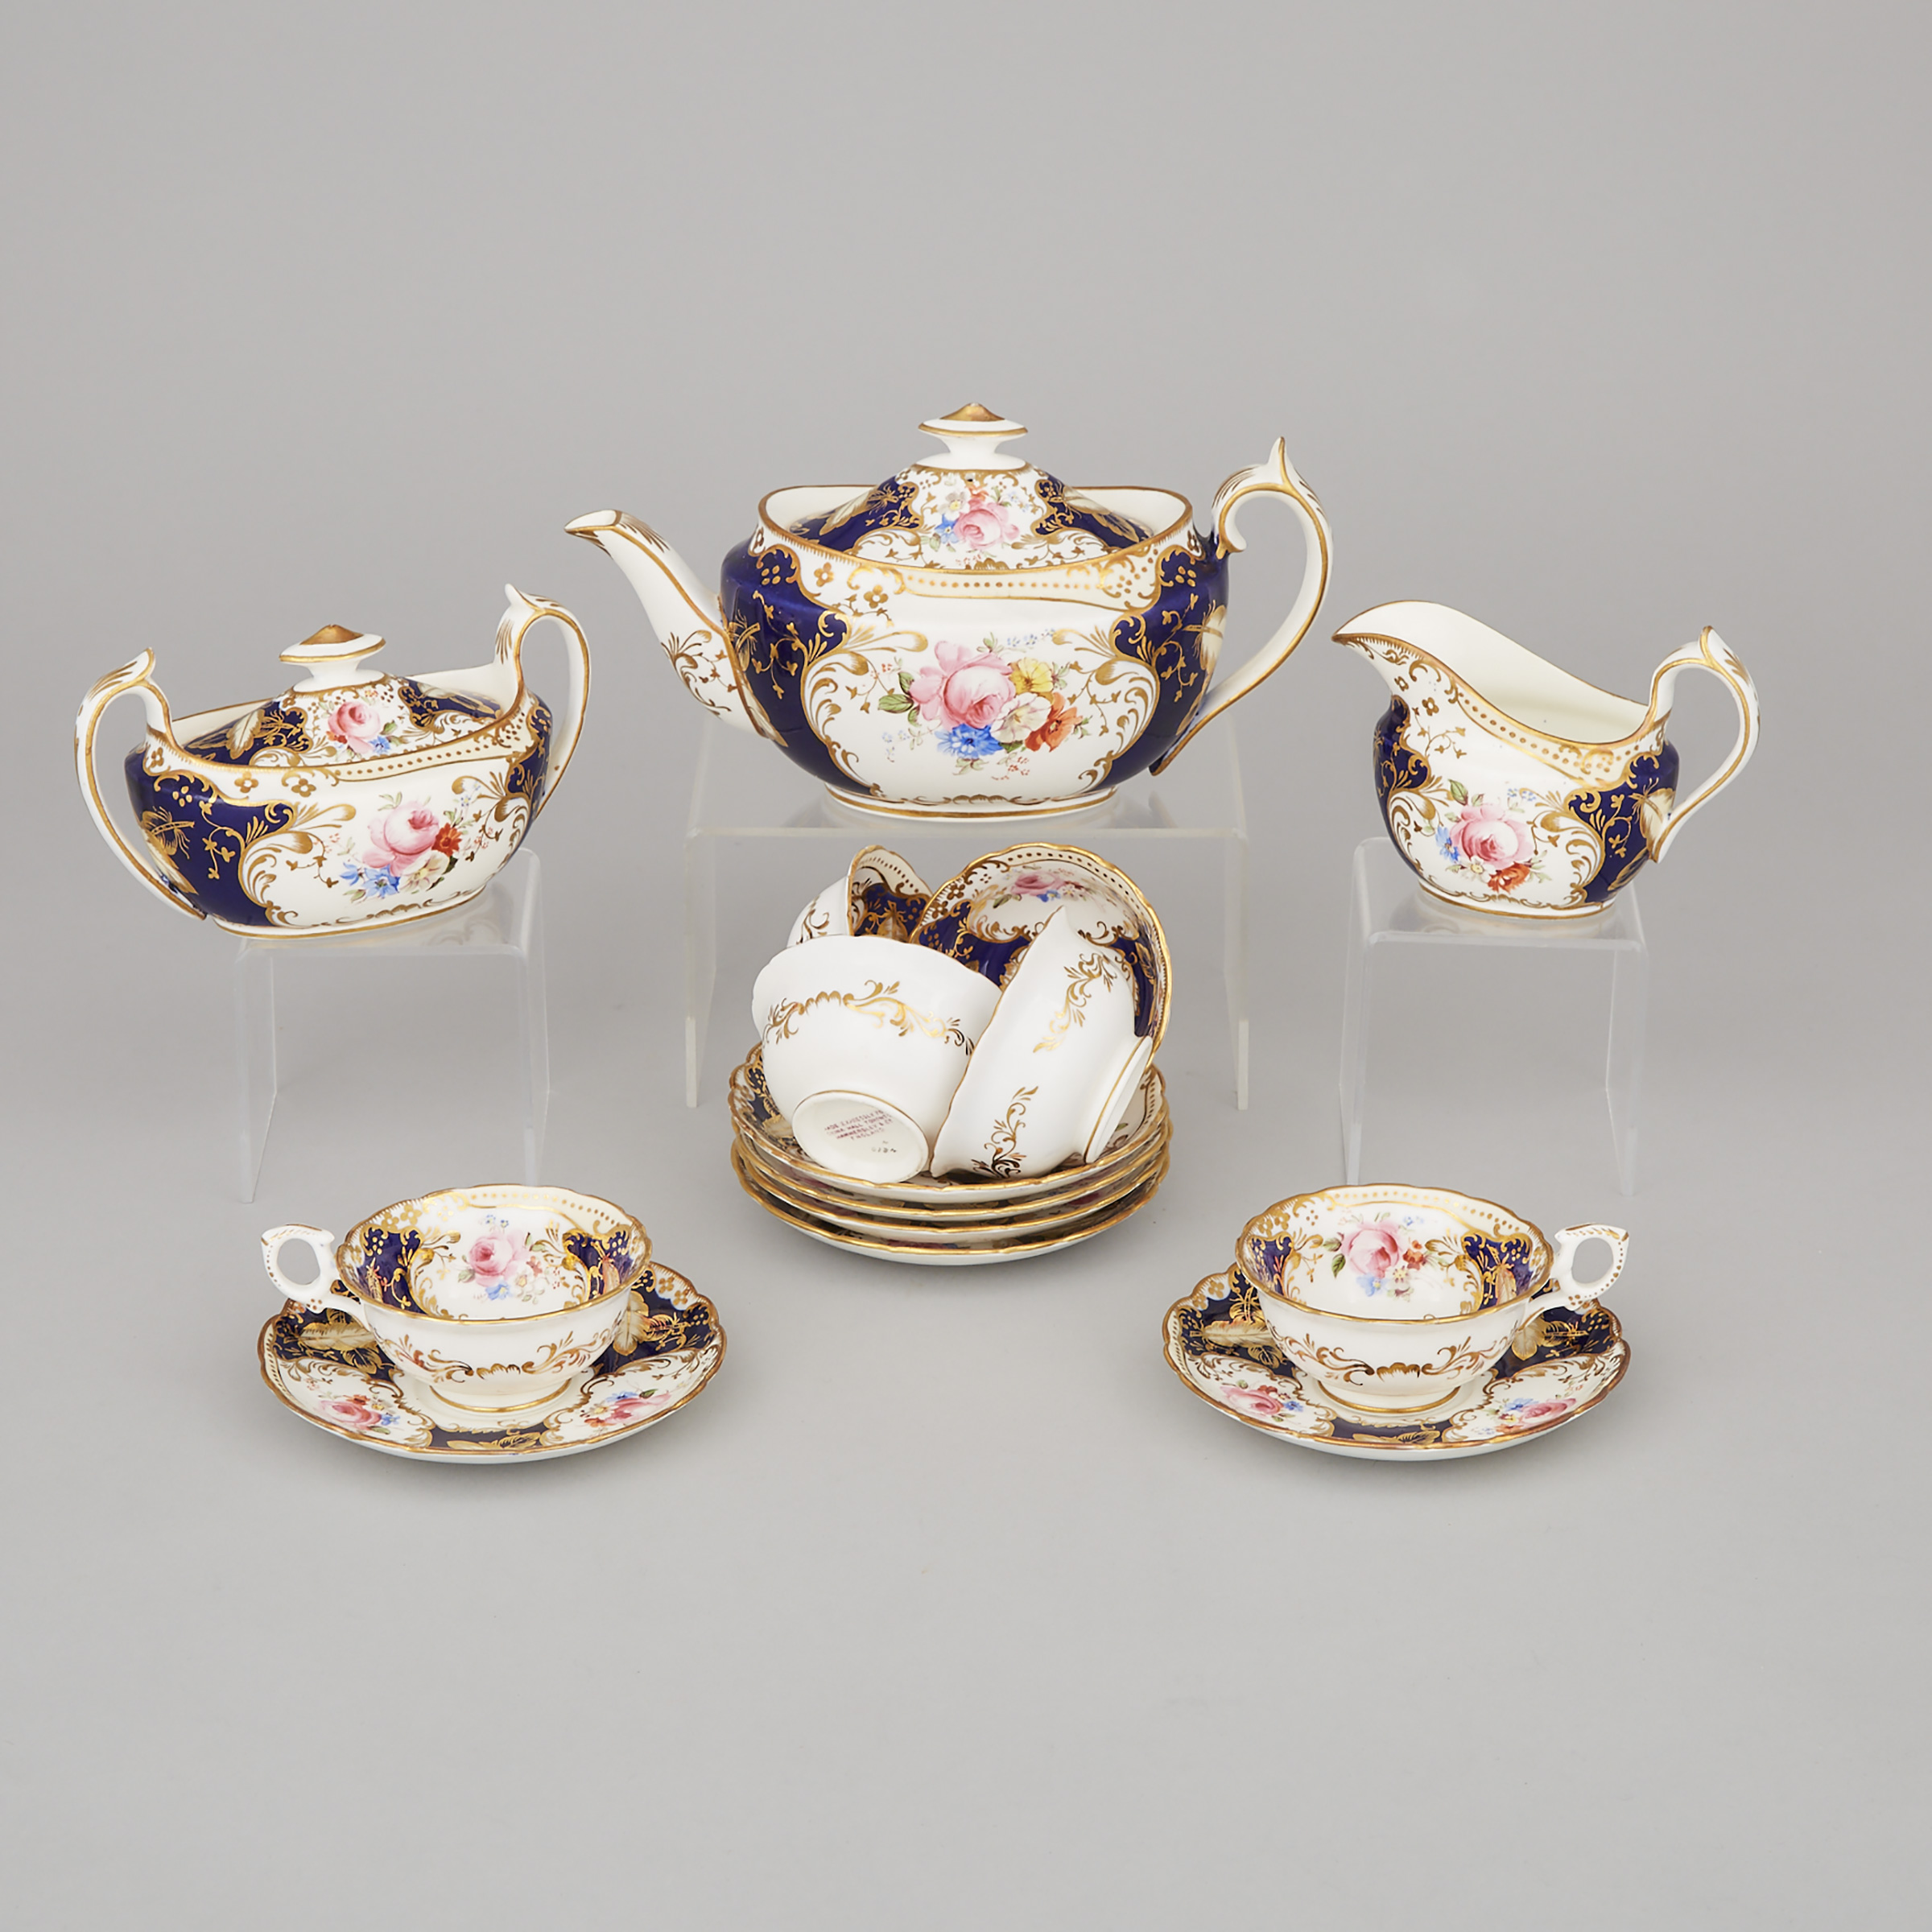 Hammersley Floral Decorated Blue Ground Tea Service, for China Hall, Toronto, 20th century